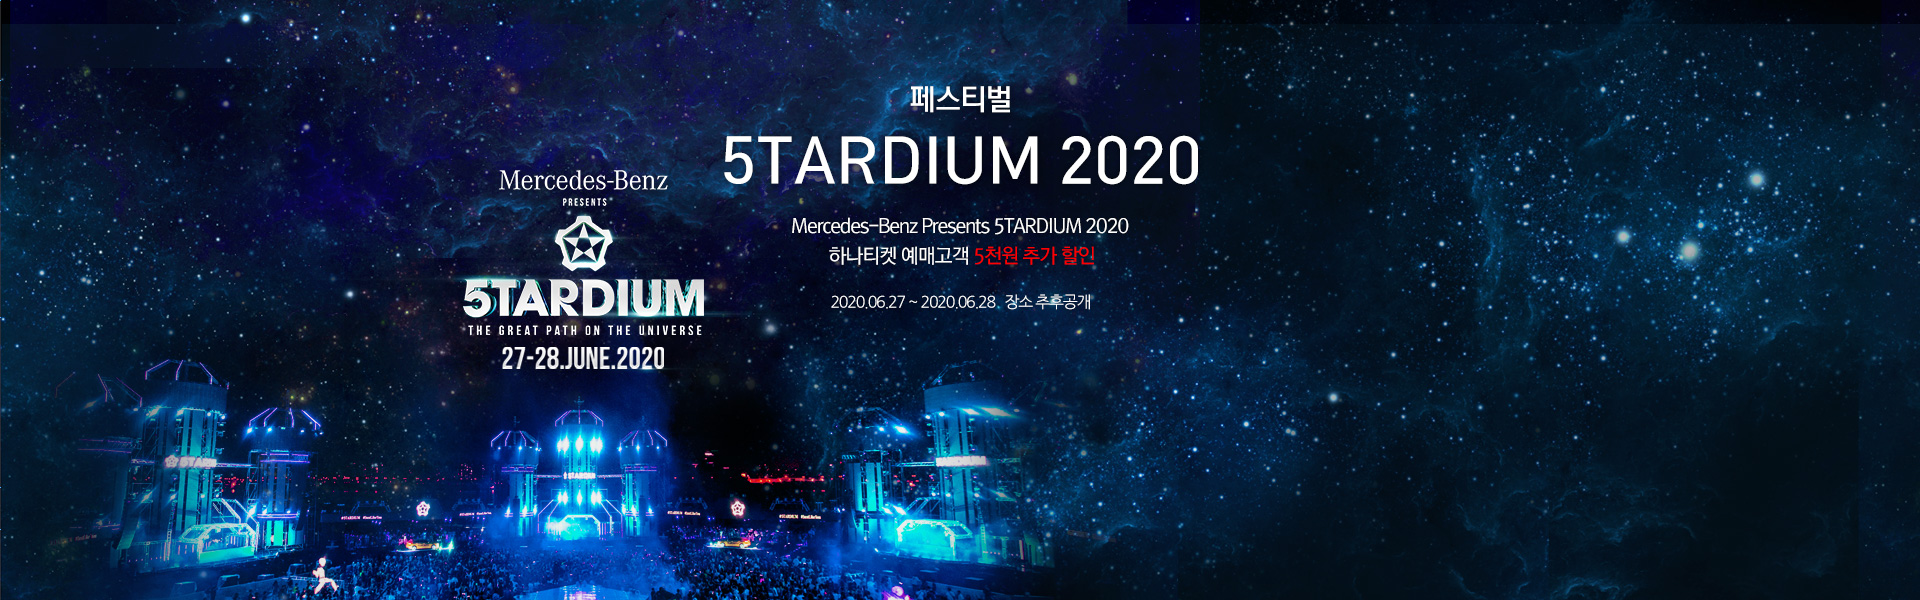 Mercedes-Benz Presents 5TARDIUM 2020